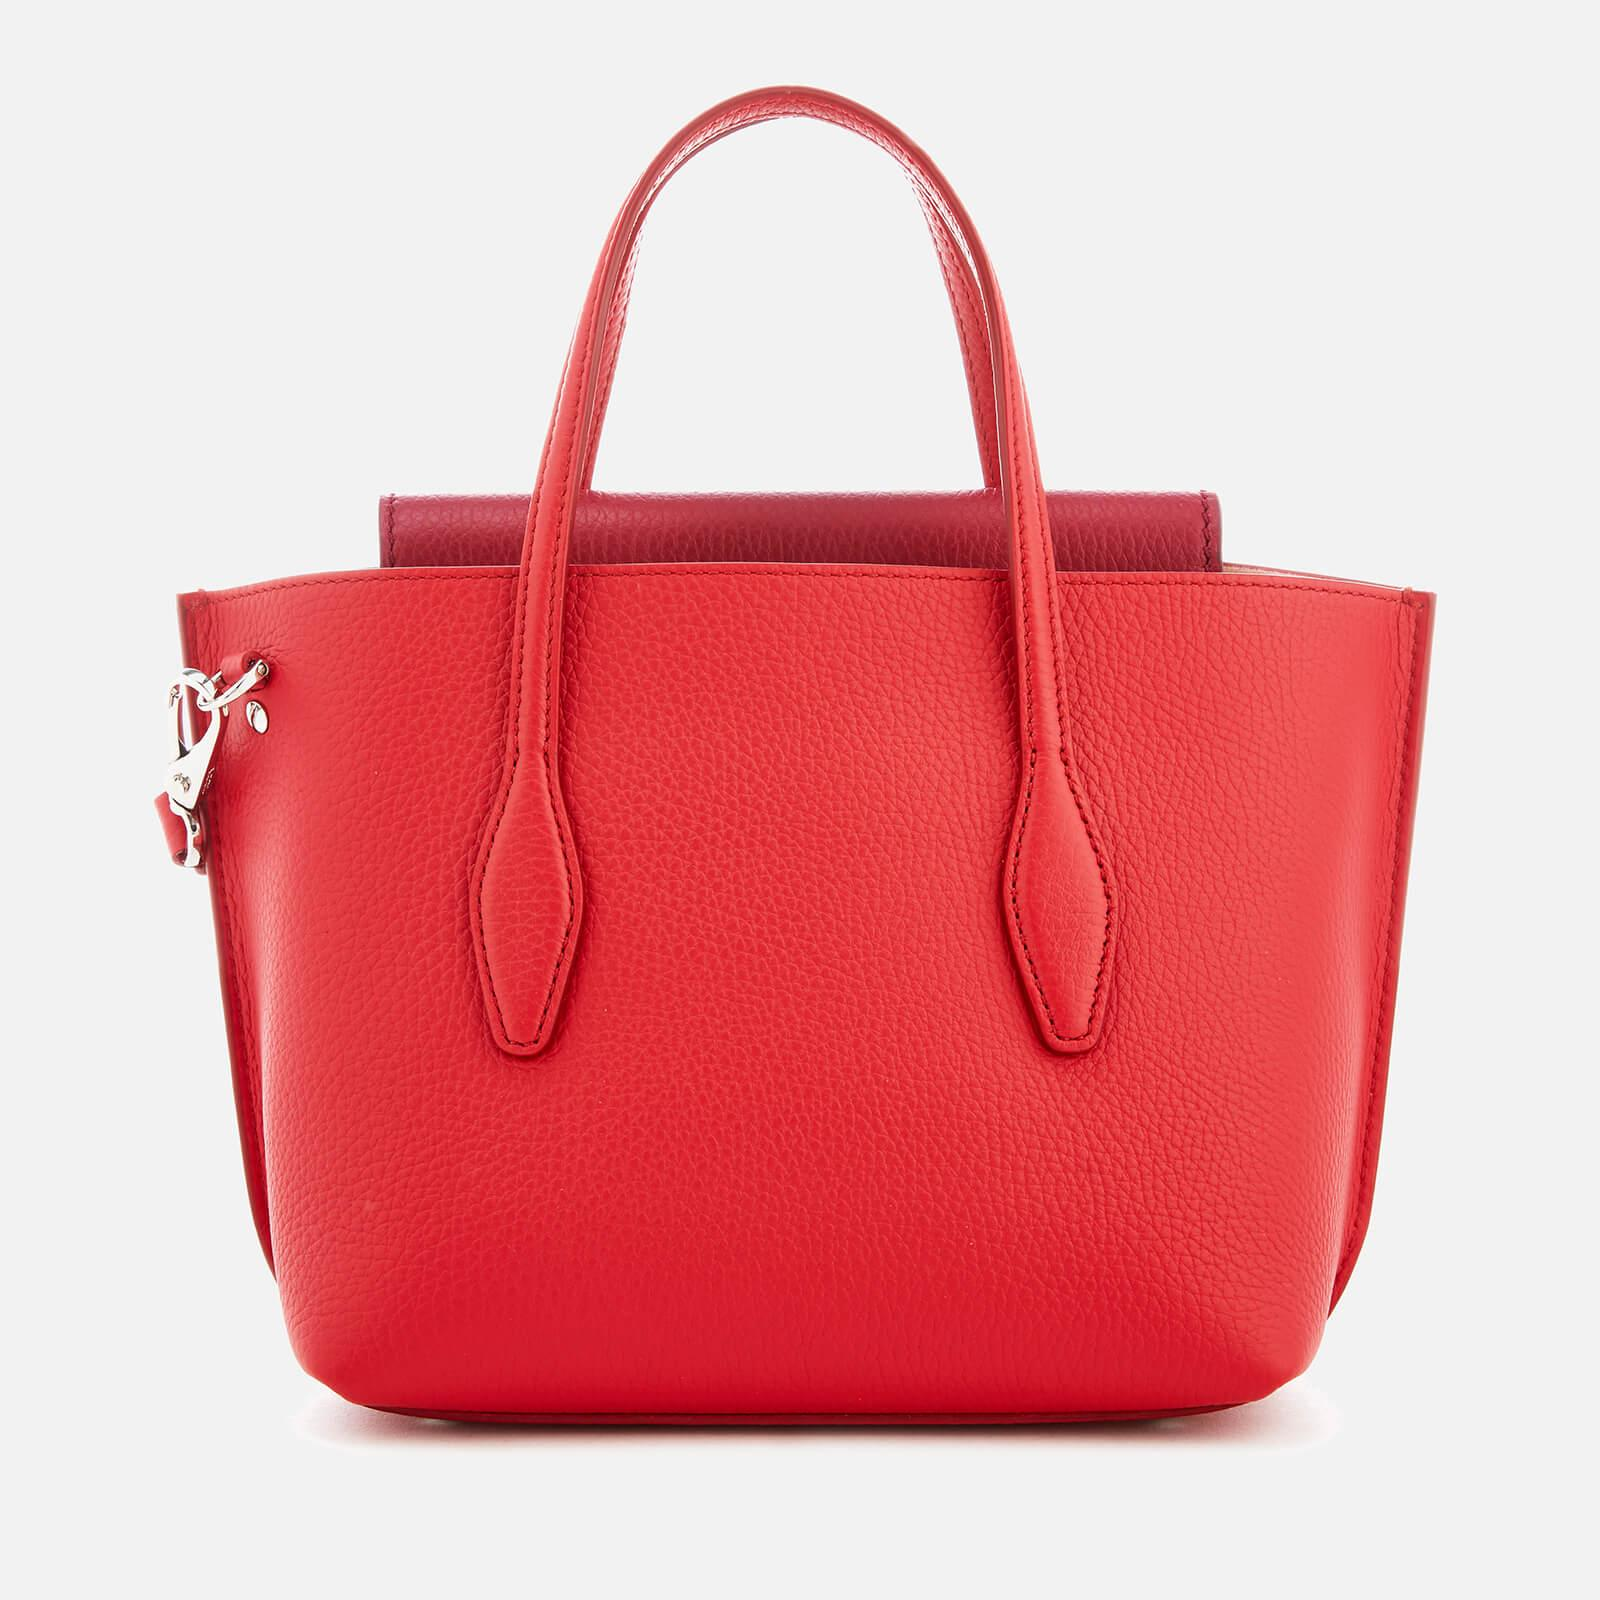 Tod's Leather Joy Tote Bag in Red